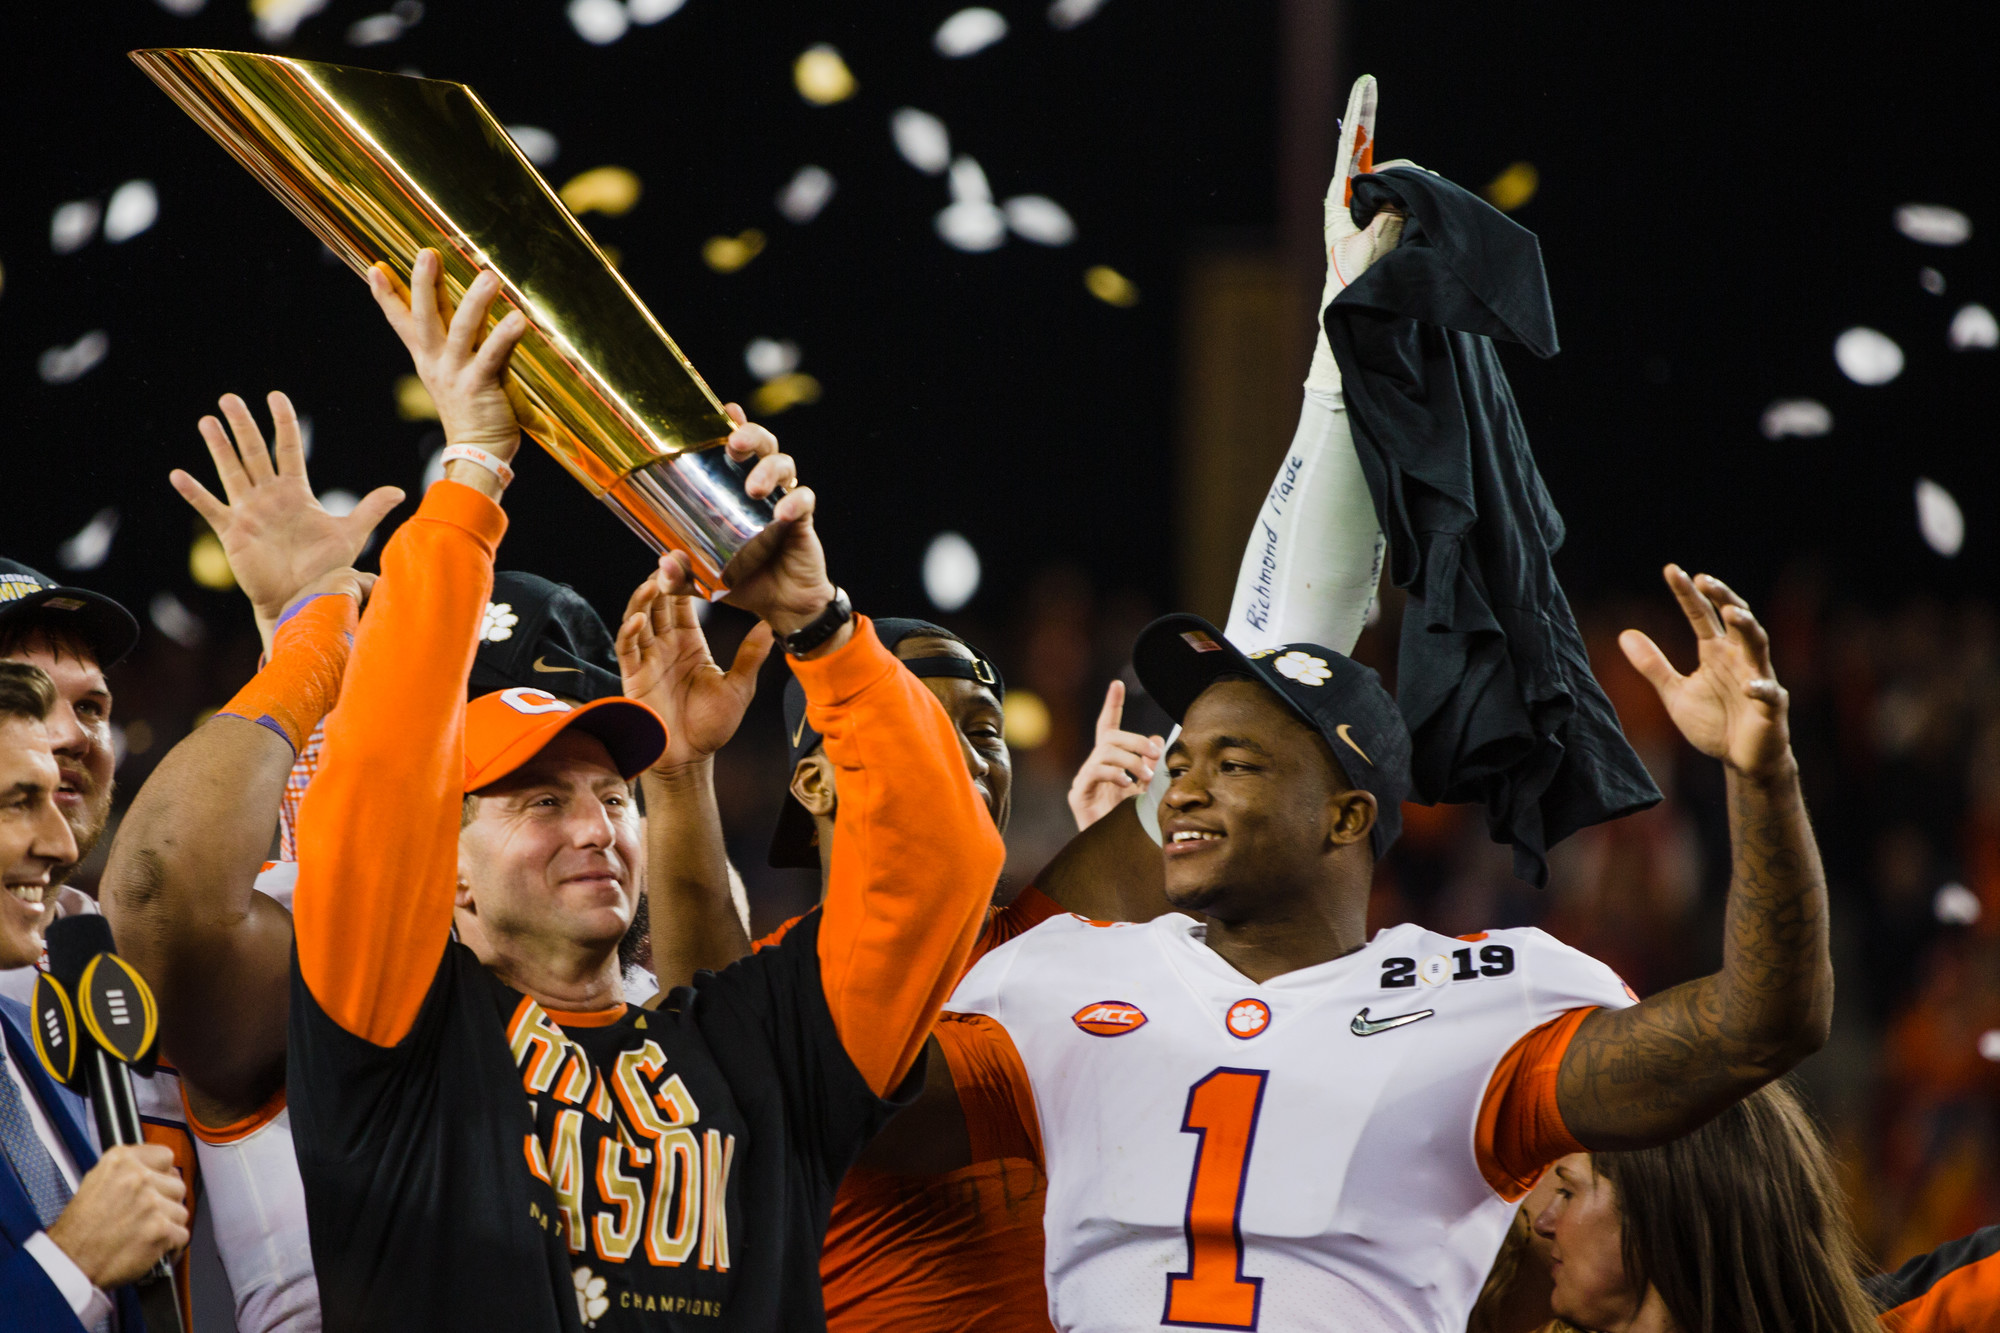 Clemson head coach Dabo Swinney hoists the trophy after the Tigers routed Alabama 44-16 to win the 2019 CFP National Championship game at Levi's Stadium in Santa Clara, California, on Monday, Jan. 7. To his left is cornerback Trayvon Mullen, the game's defensive MVP who finished with an interception and a sack.